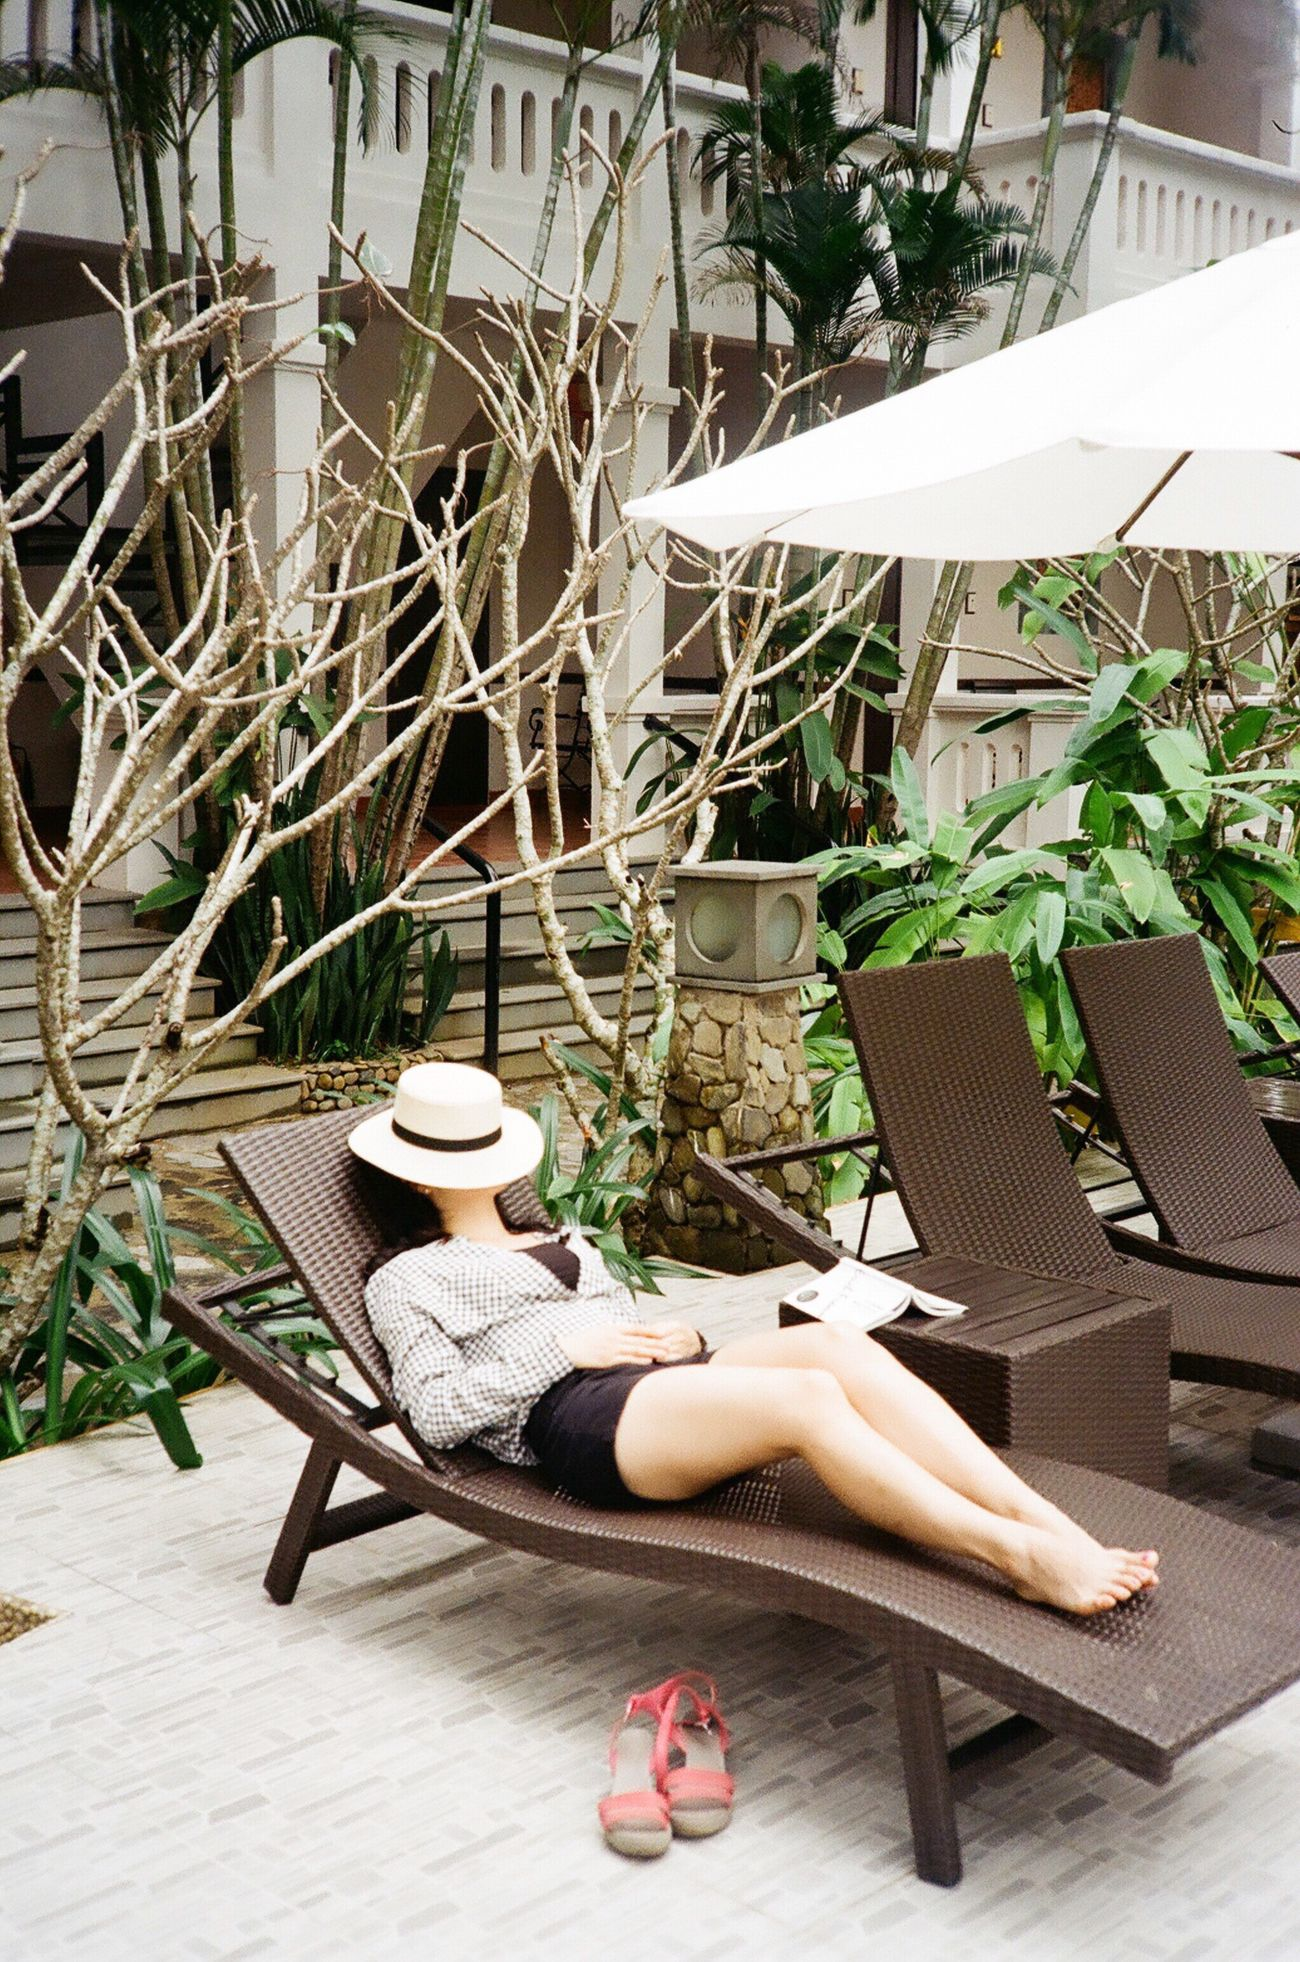 Film Film Photography Filmisnotdead Analogue Photography Capture The Moment Vietnam Hoi An Resort Relaxing Only Women Outdoor Chair Holiday Take A Break Tree Sleep Cozy Vacations Light And Shadow Laying Down